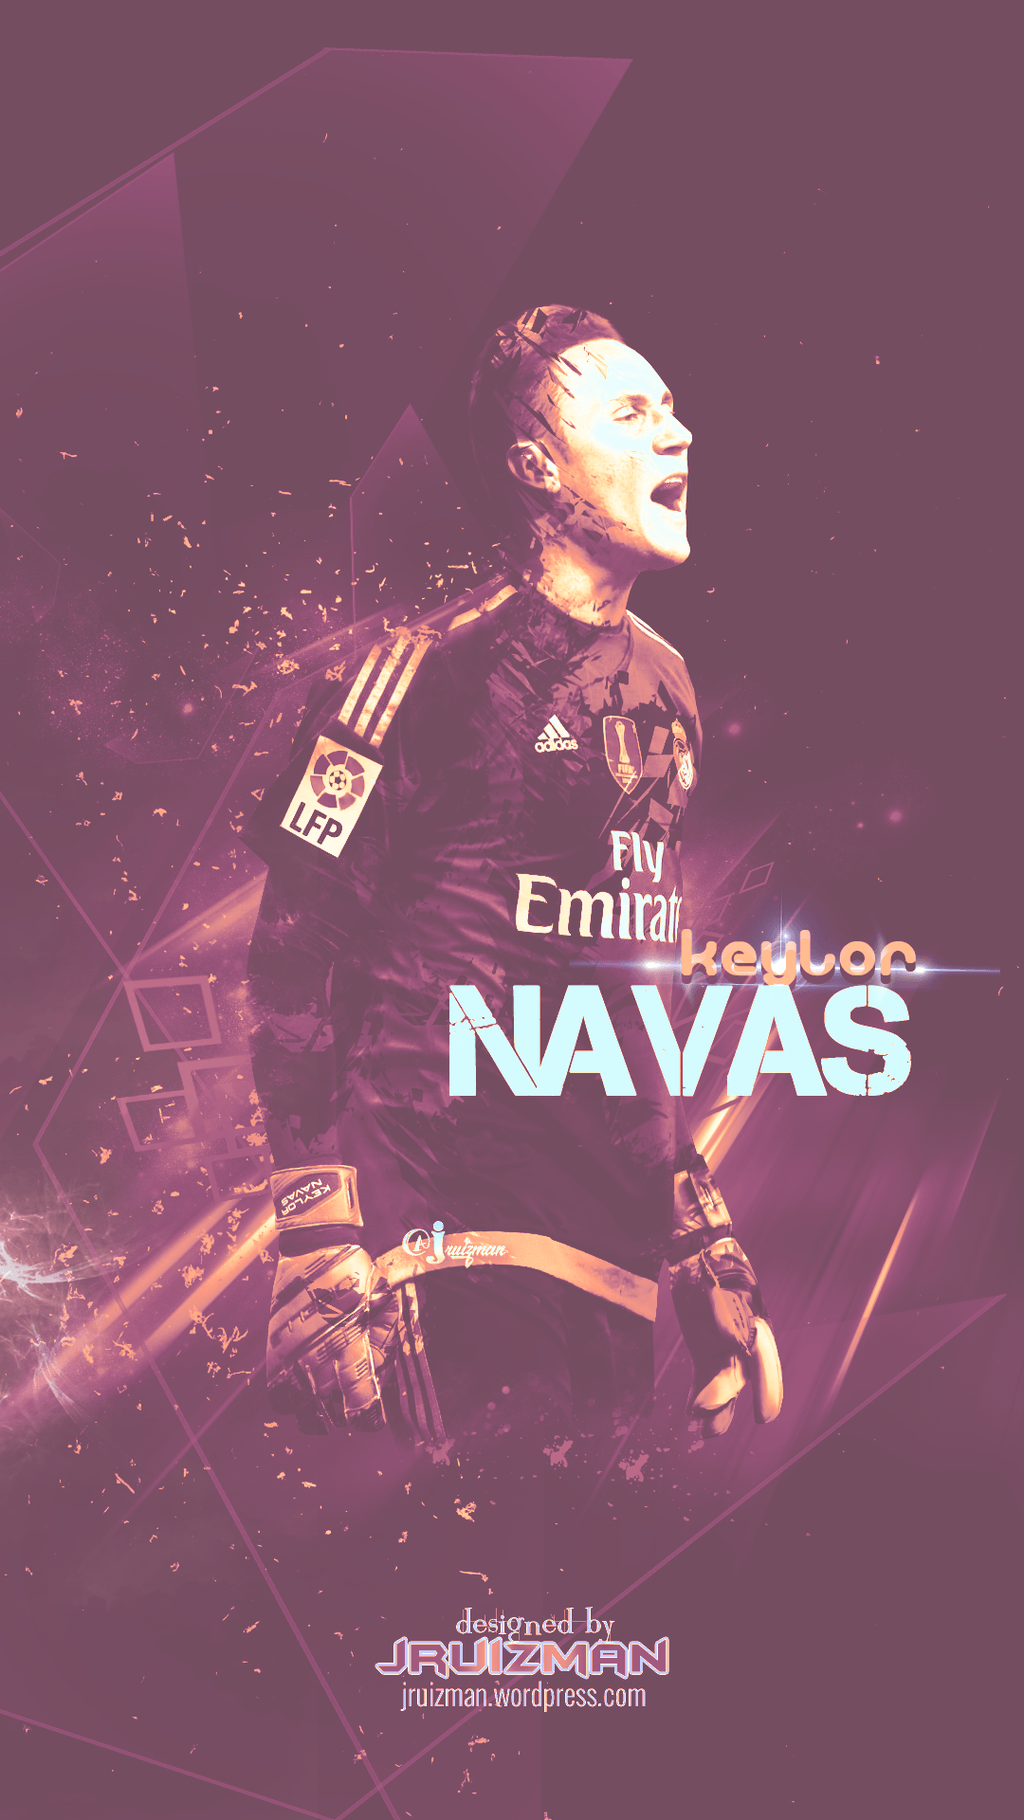 Keylor Navas by jruizman on DeviantArt